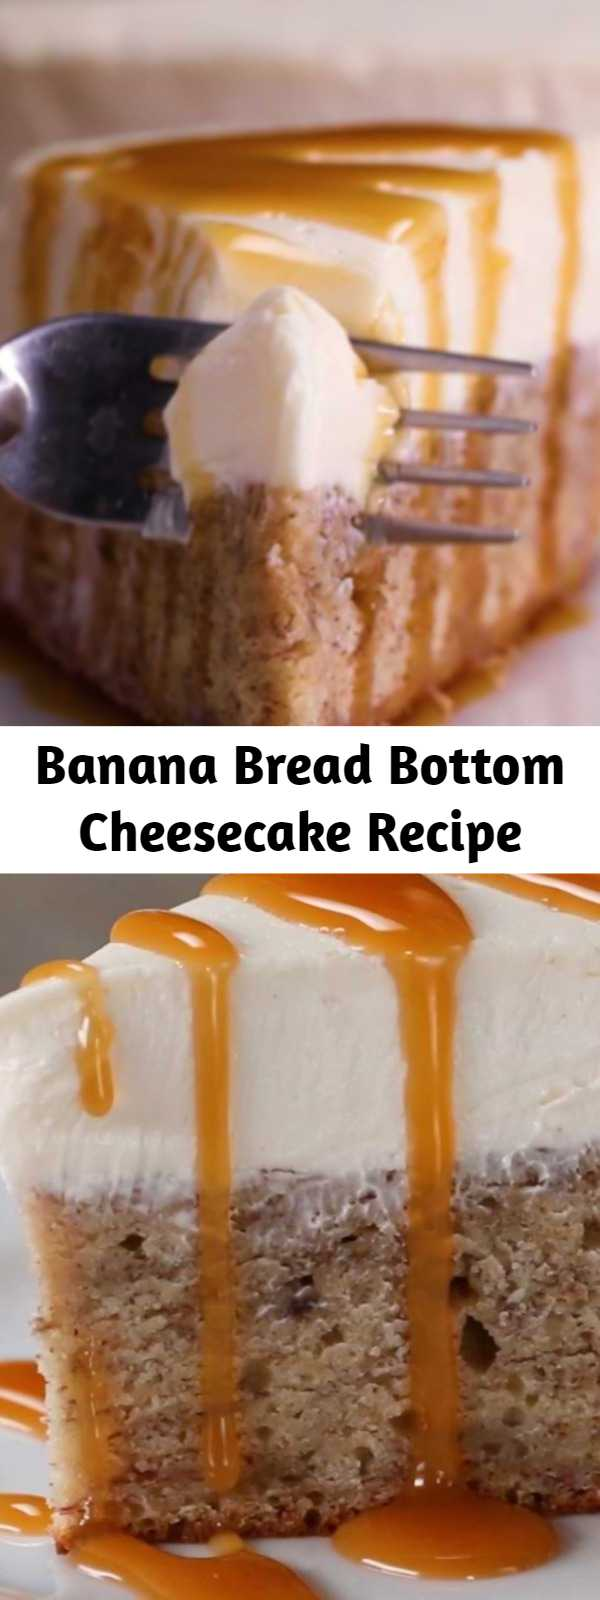 Banana Bread Bottom Cheesecake Recipe - It is soo darn easy to make and holy moly is it decadent and rich.  The banana bread layer smelled absolutely heavenly baking and turned out sooo moist and delicious, and the cheesecake layer couldn't have been more creamy or easy to make.